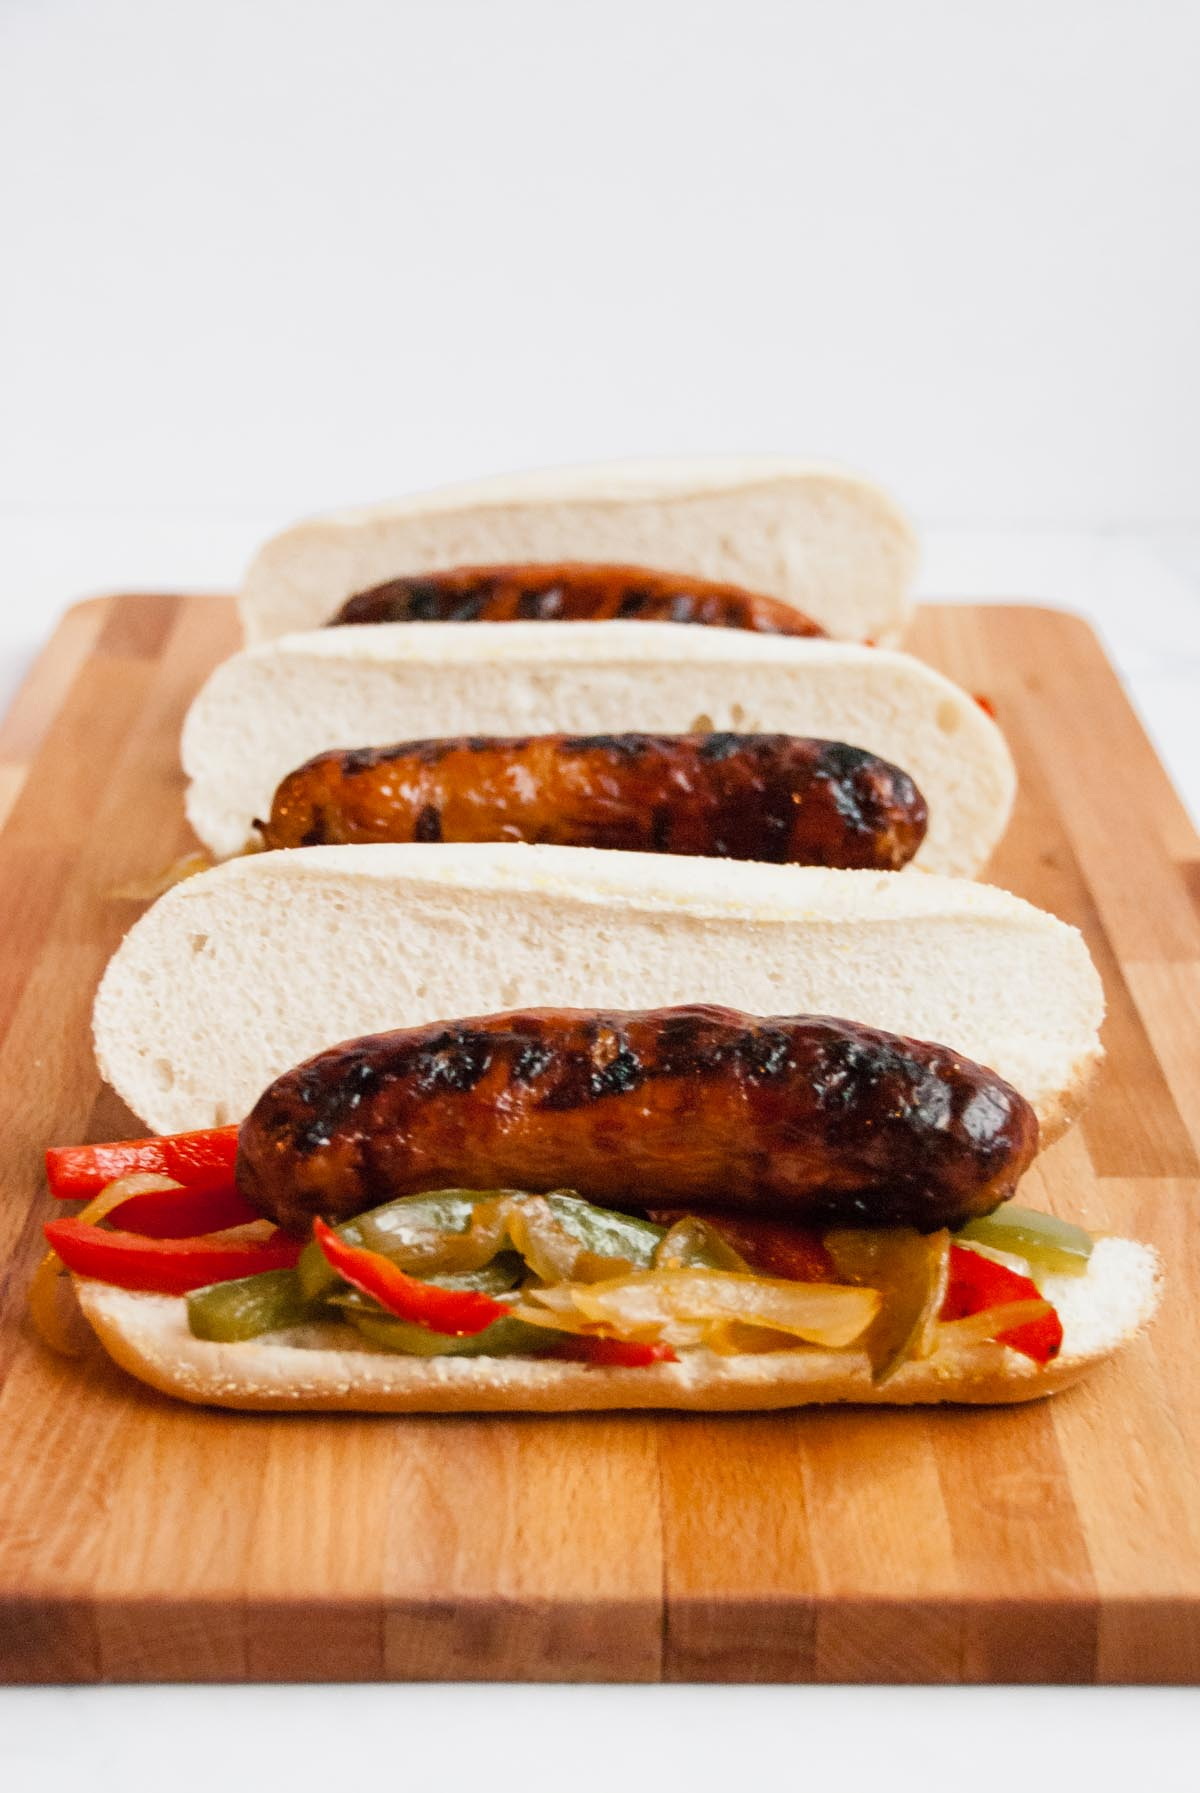 Three Italian sausage subs on a wood cutting board ready to be served.